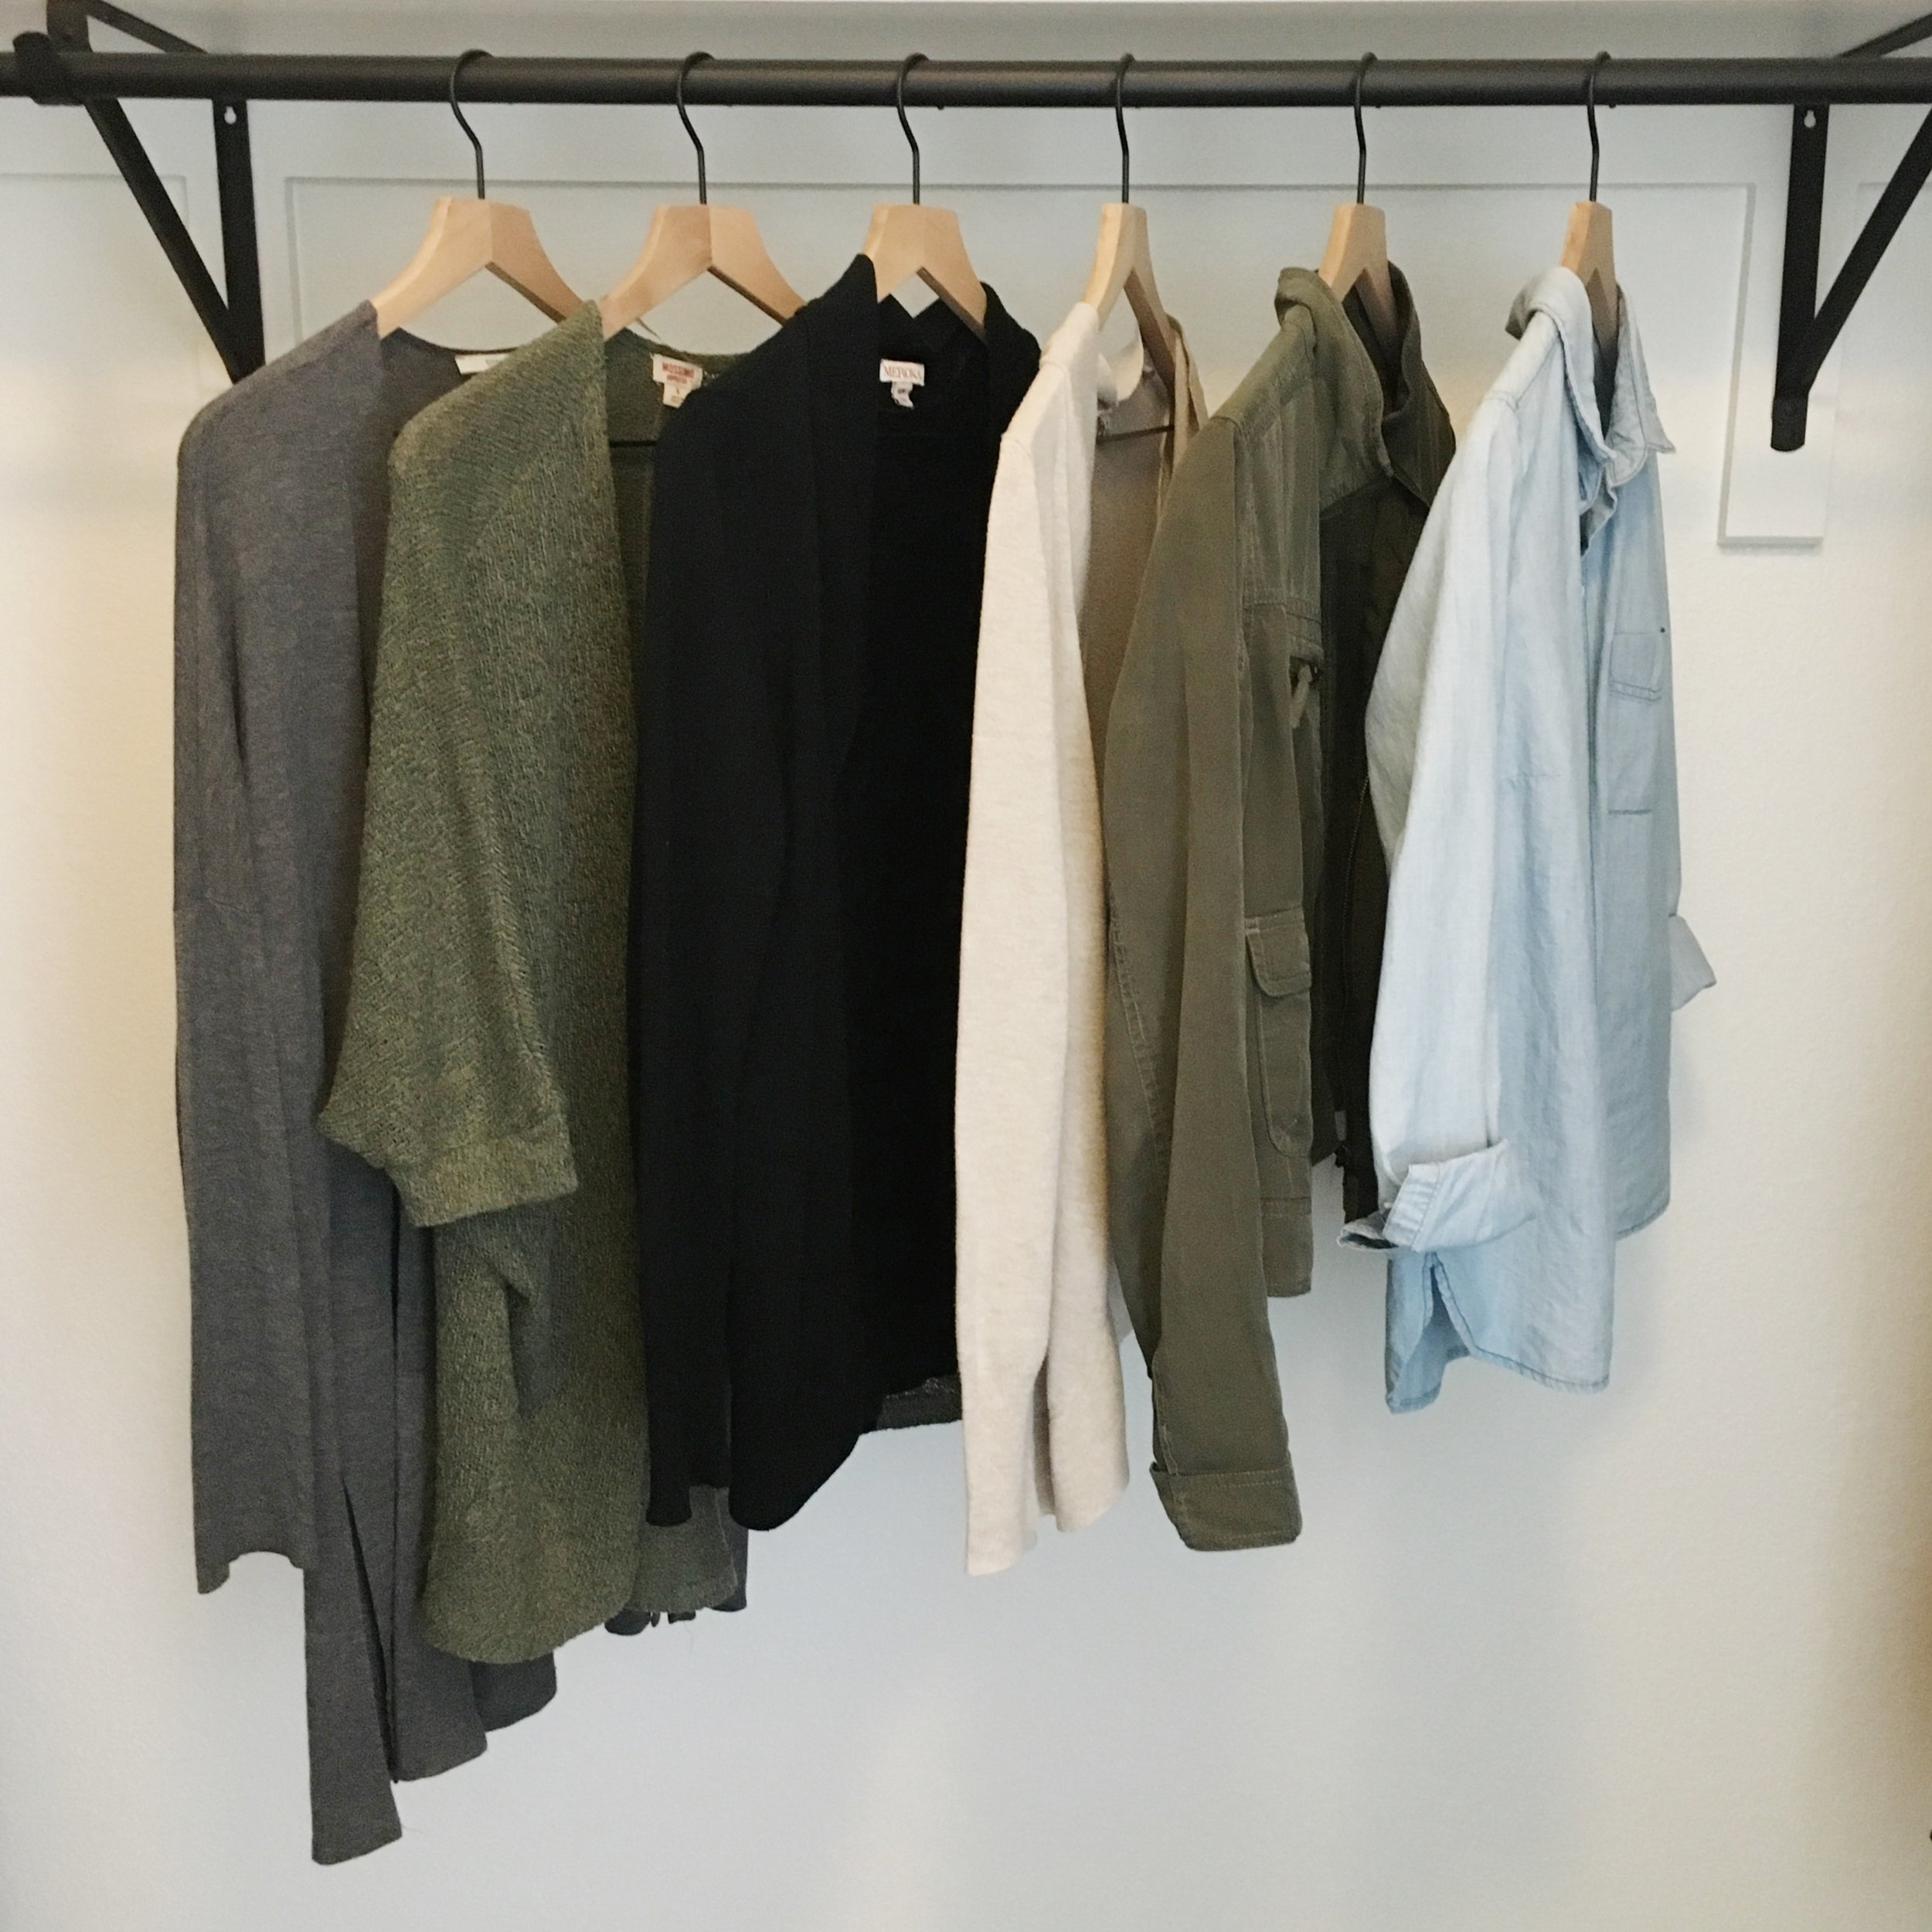 Ethical clothing & brands; outer layers